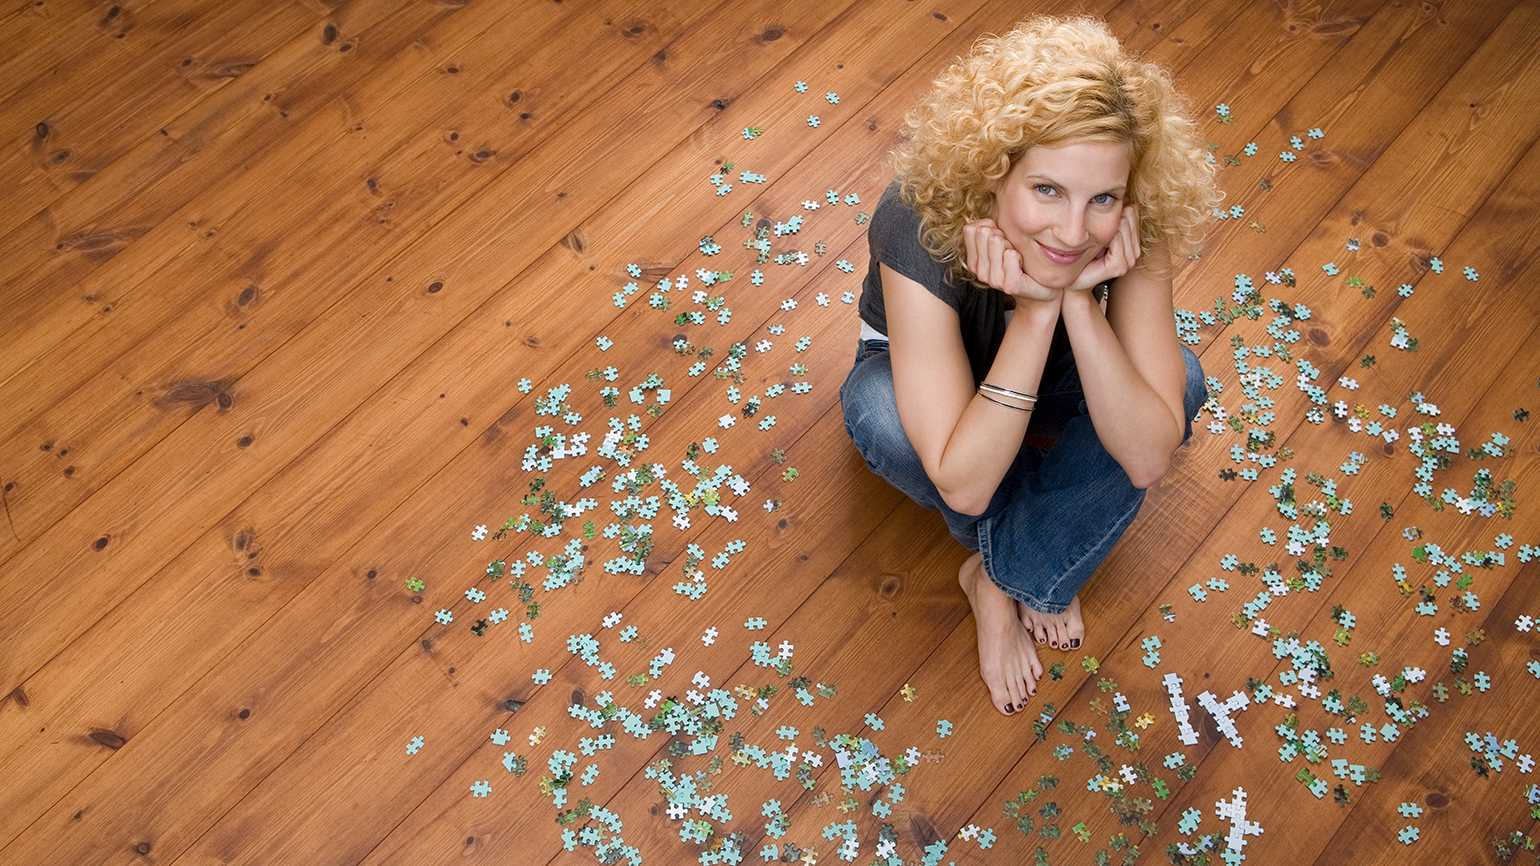 Benefits of solving jigsaw puzzles